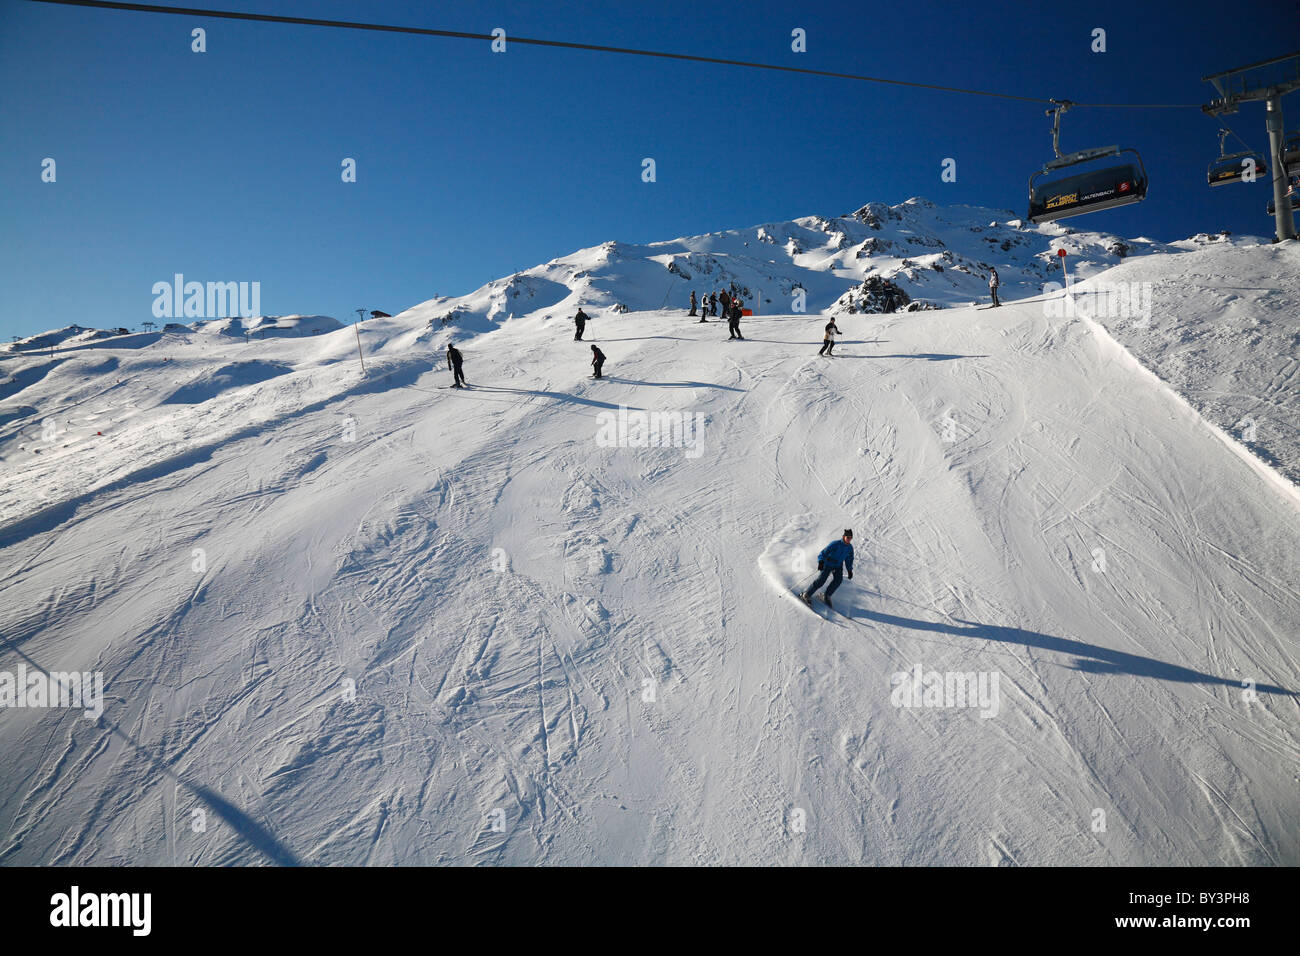 Skiing on the hill at Zillertal Arena, Austria, Europe - Stock Image